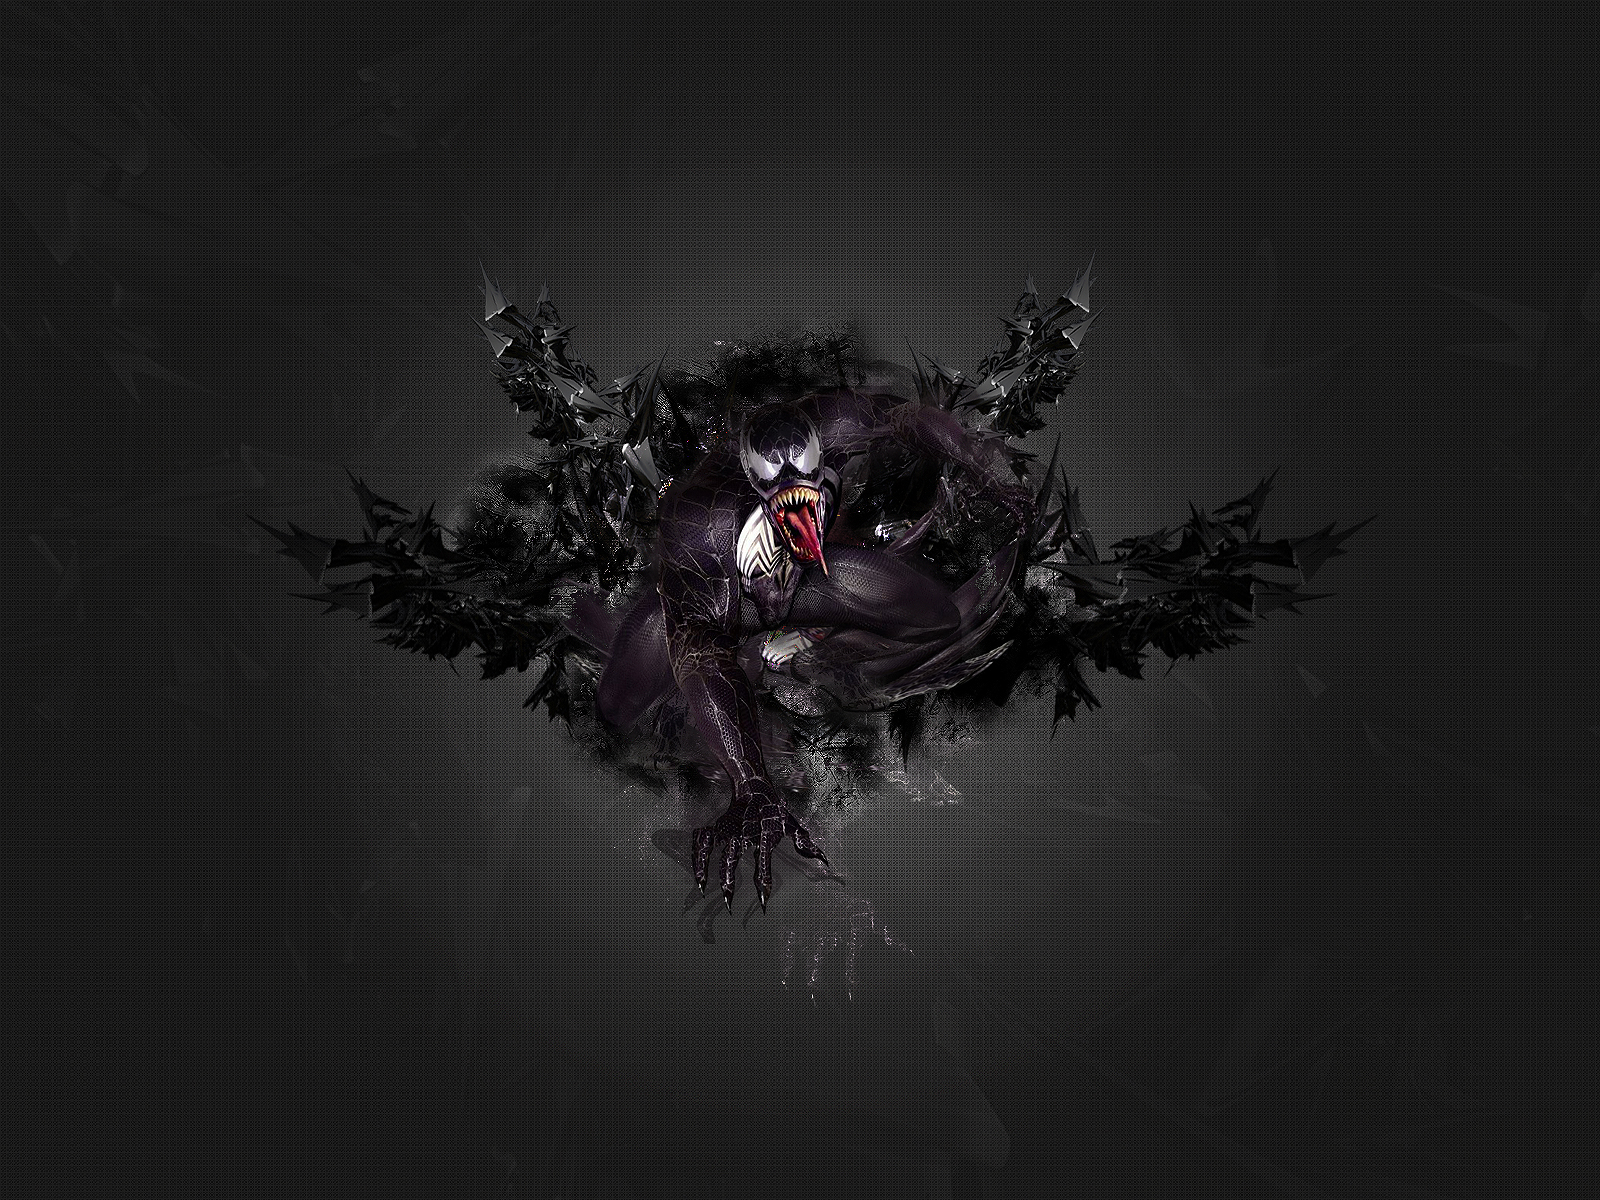 venom logo wallpaper - photo #35